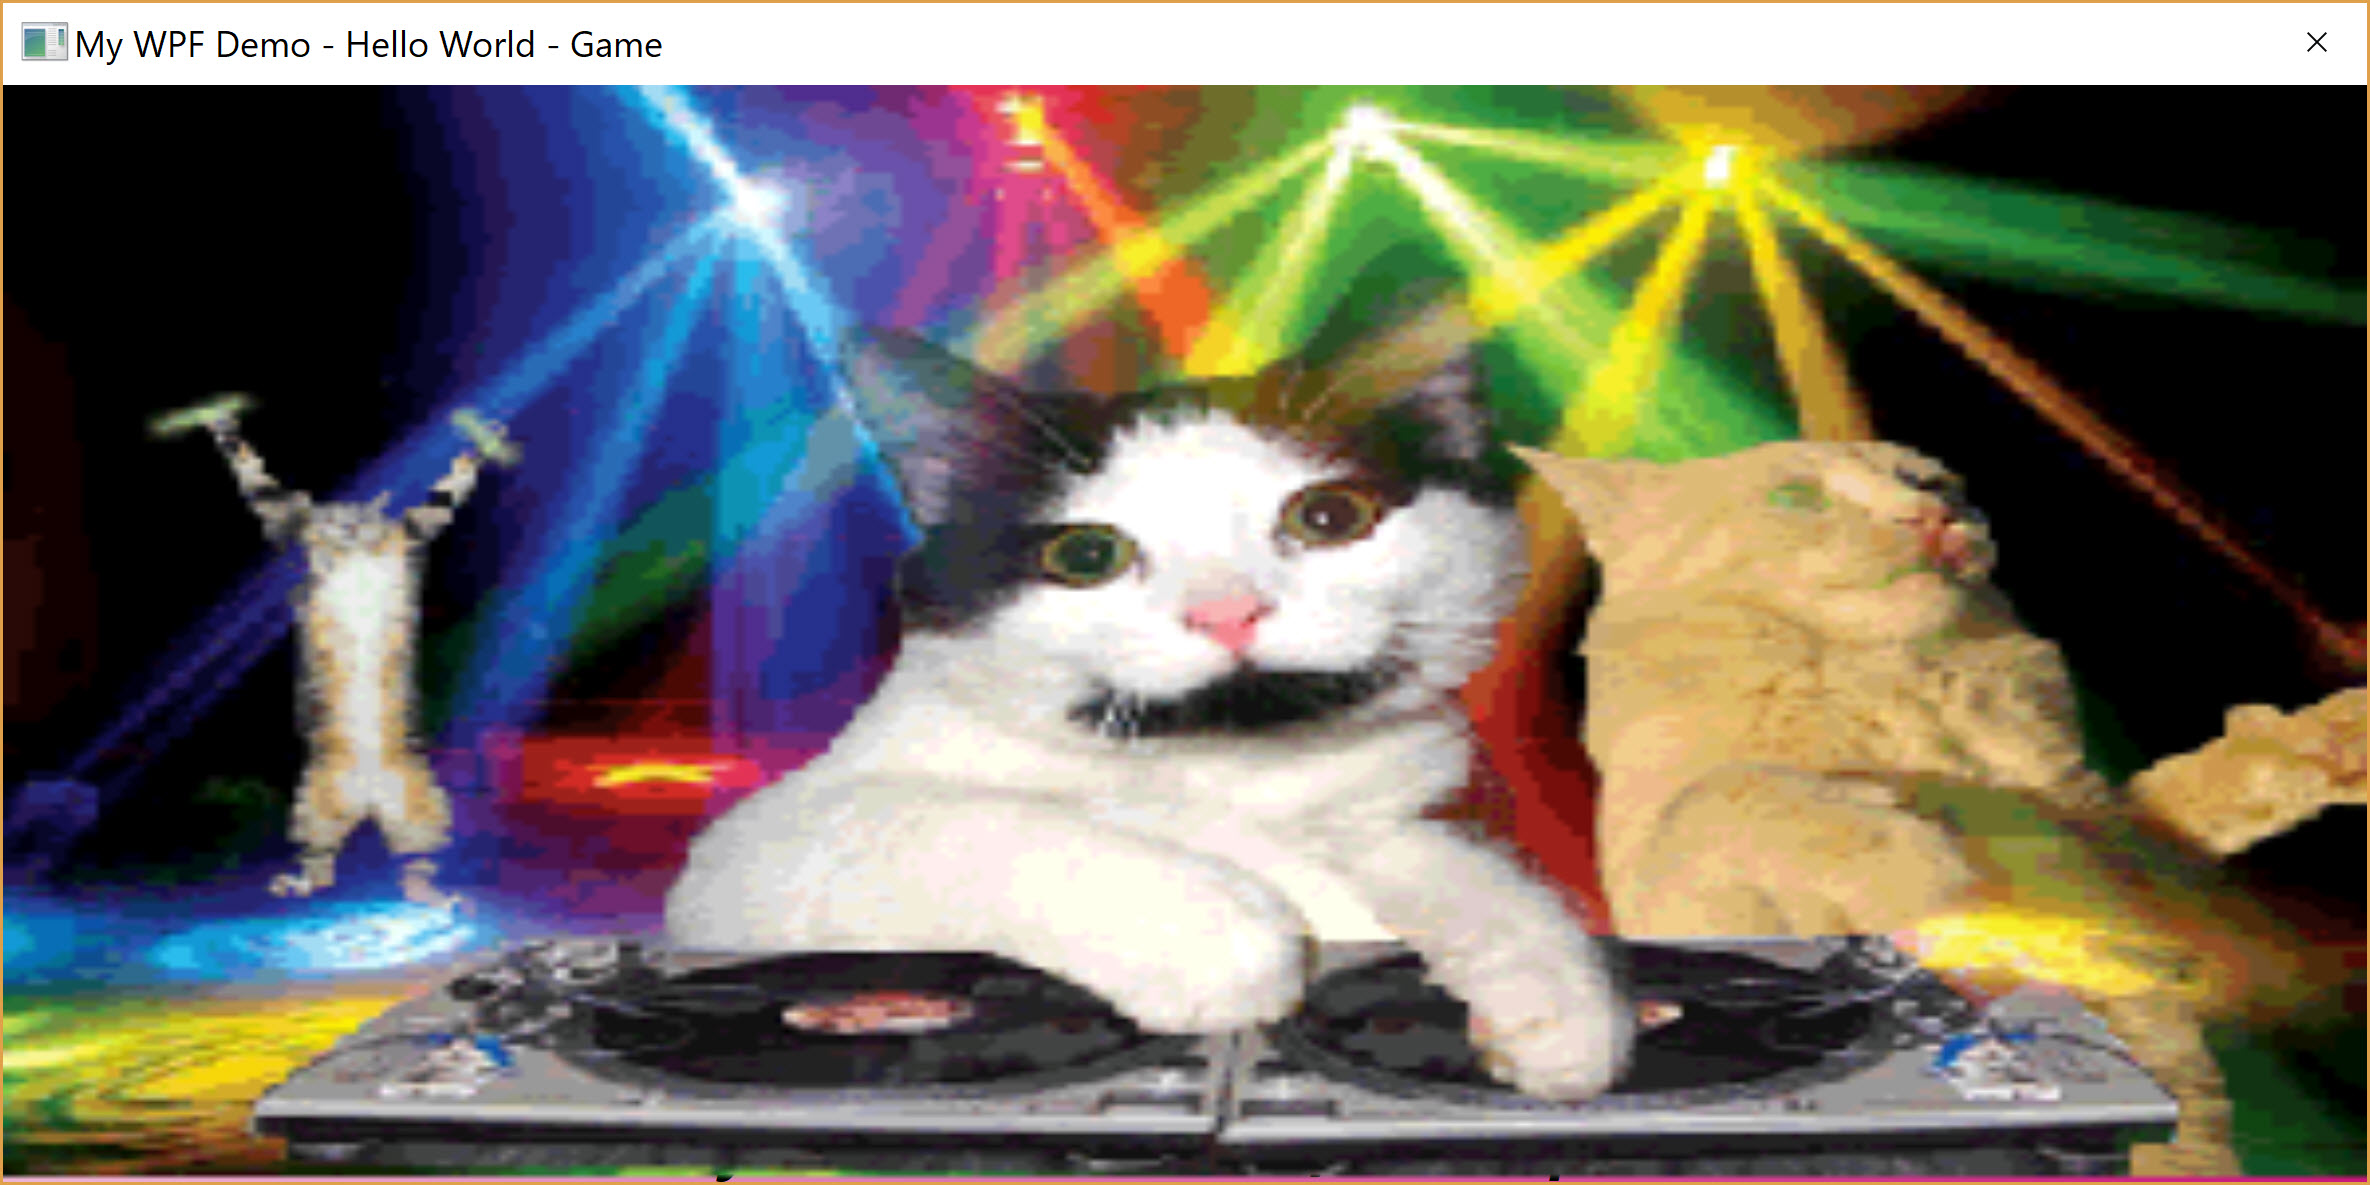 Animated GIF displays of Cats partying